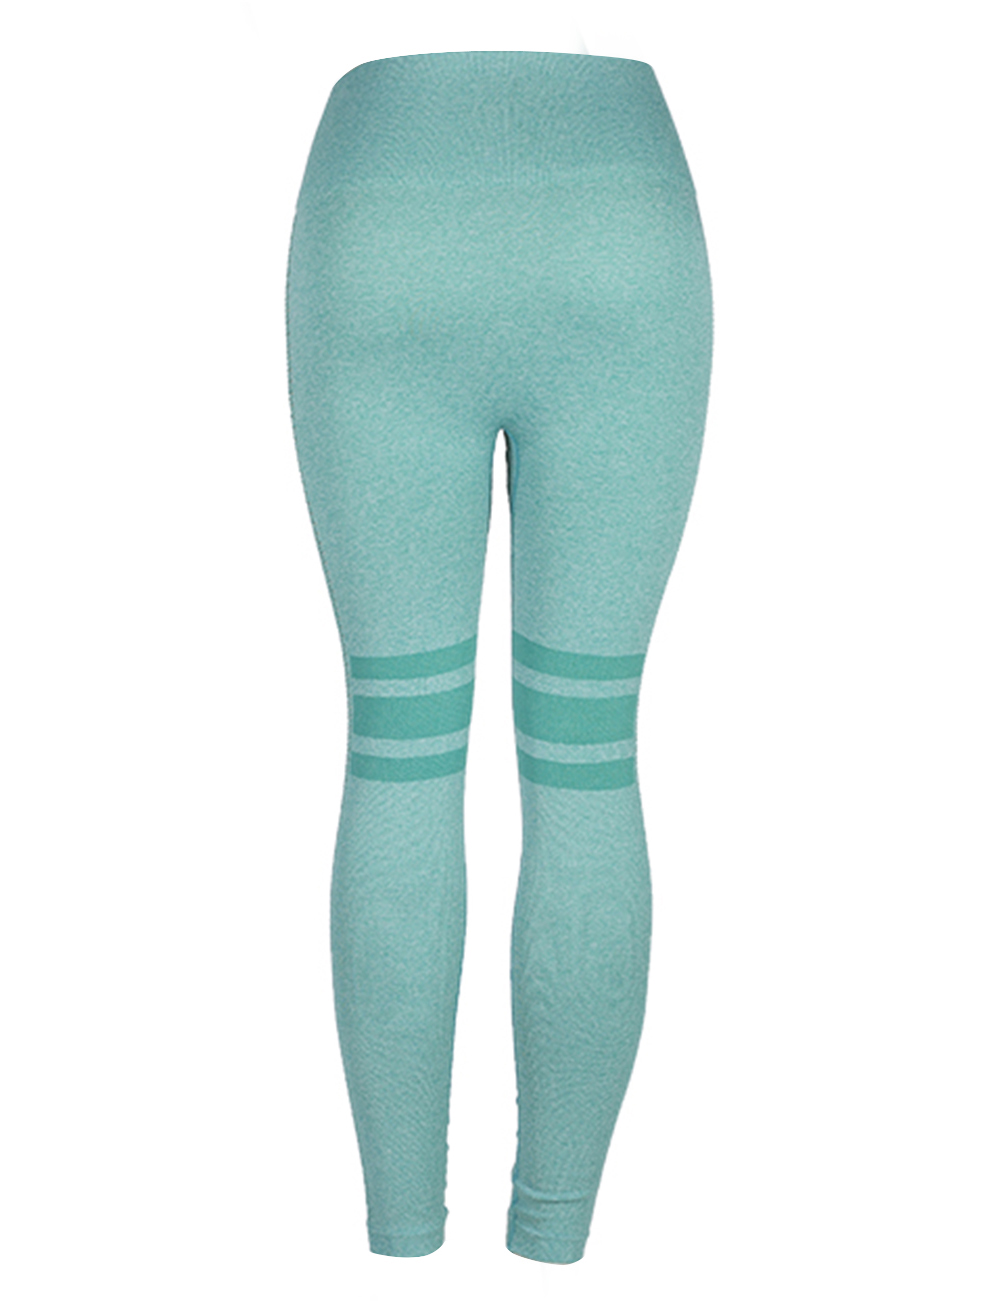 //cdn.affectcloud.com/hexinfashion/upload/imgs/ActiveWear/Yoga_Legging/YD190109-GN3/YD190109-GN3-201911215dd5ecaa04e11.jpg